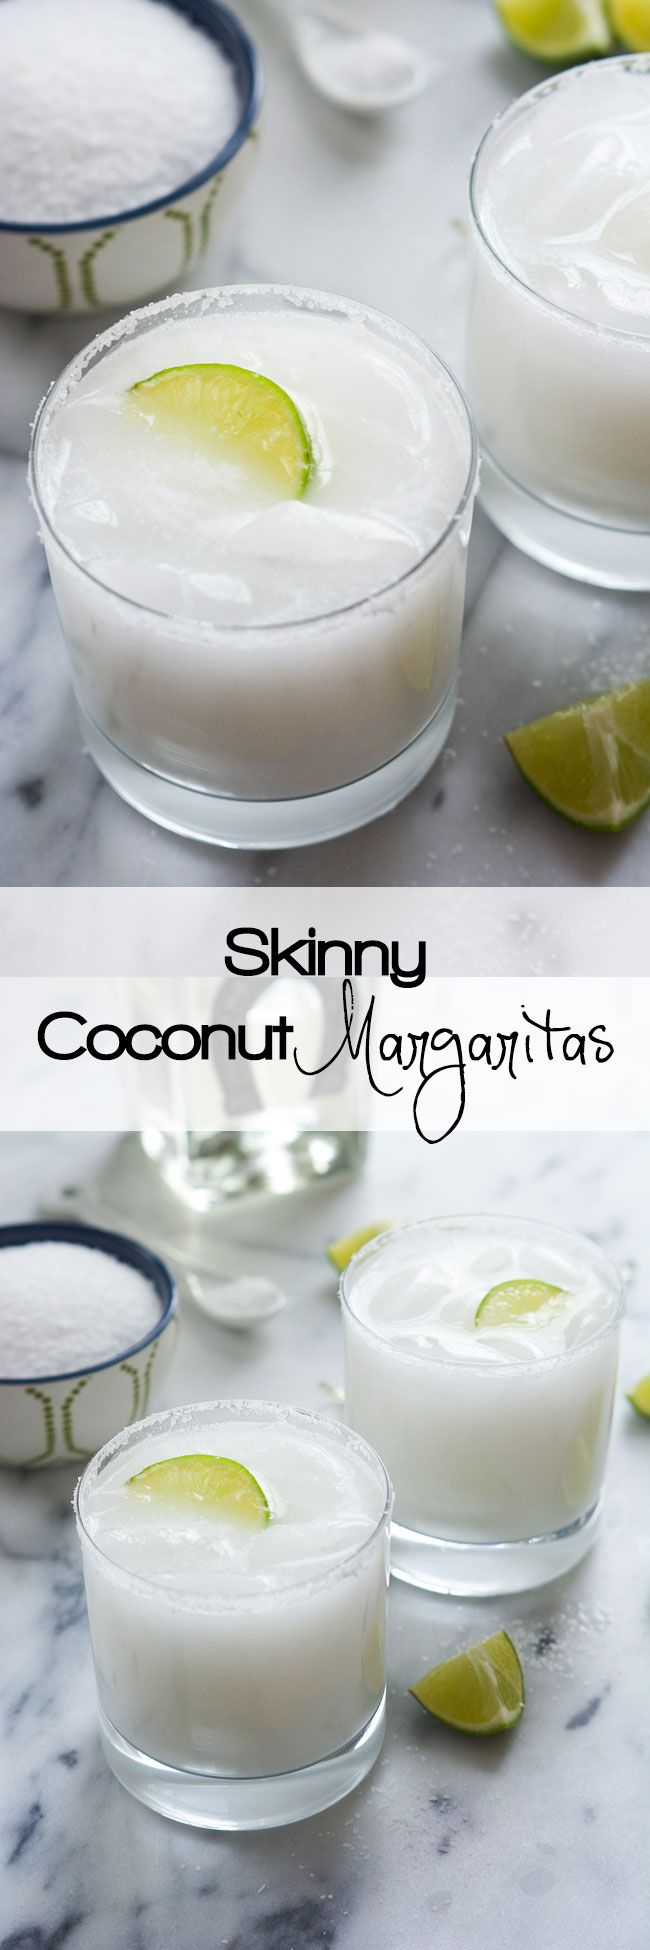 A tropical spin on the classic drink! These Skinny Coconut Margarita are made with lite coconut milk, coconut water, tequila